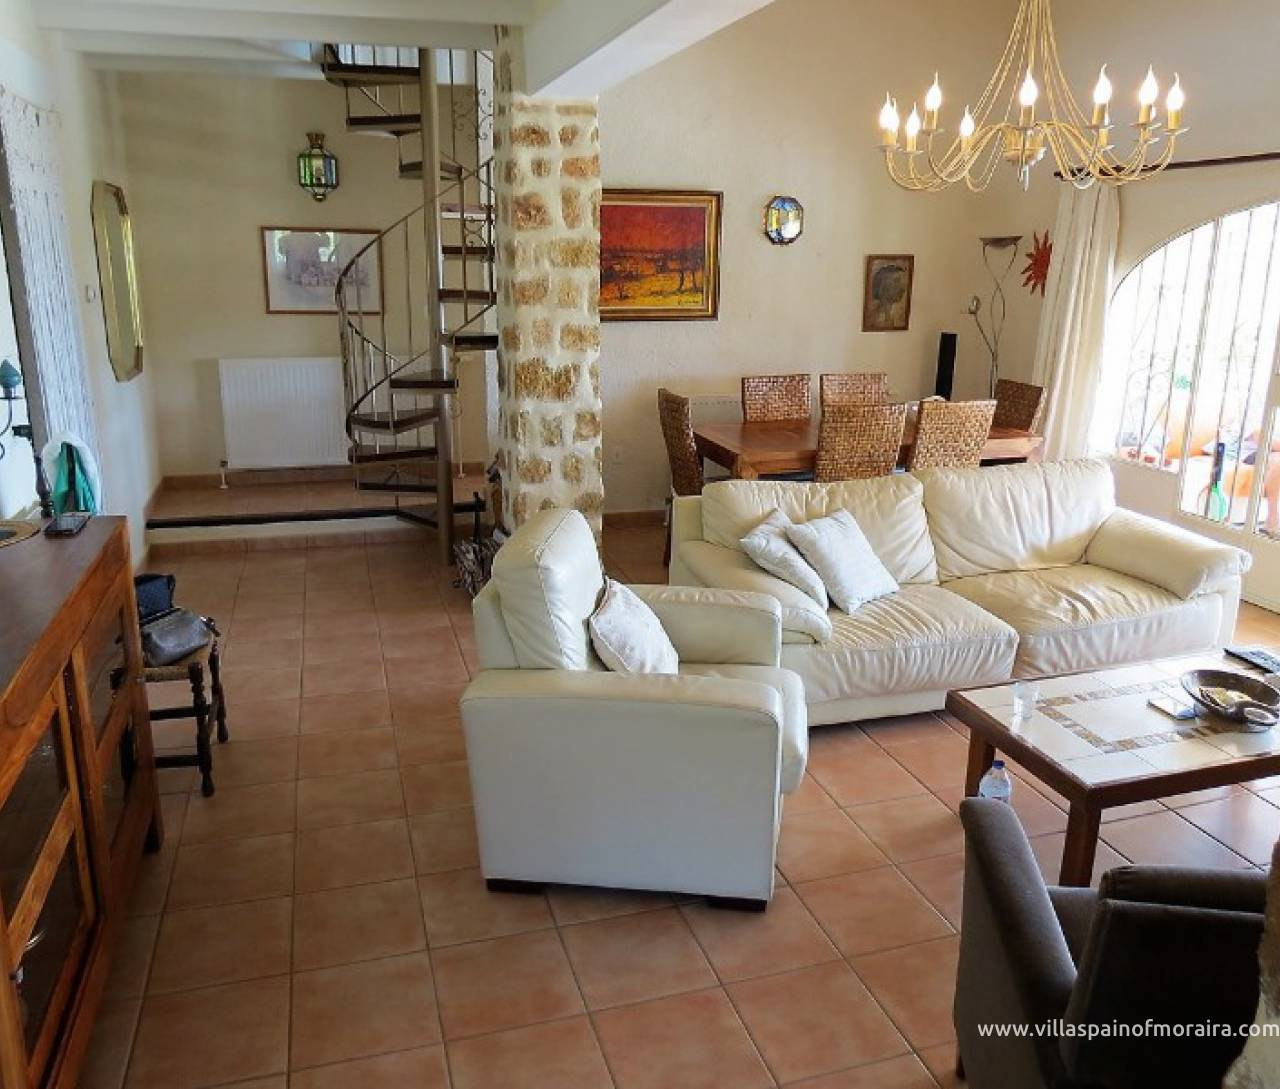 Villa for sale in La Vina Benissa Costa